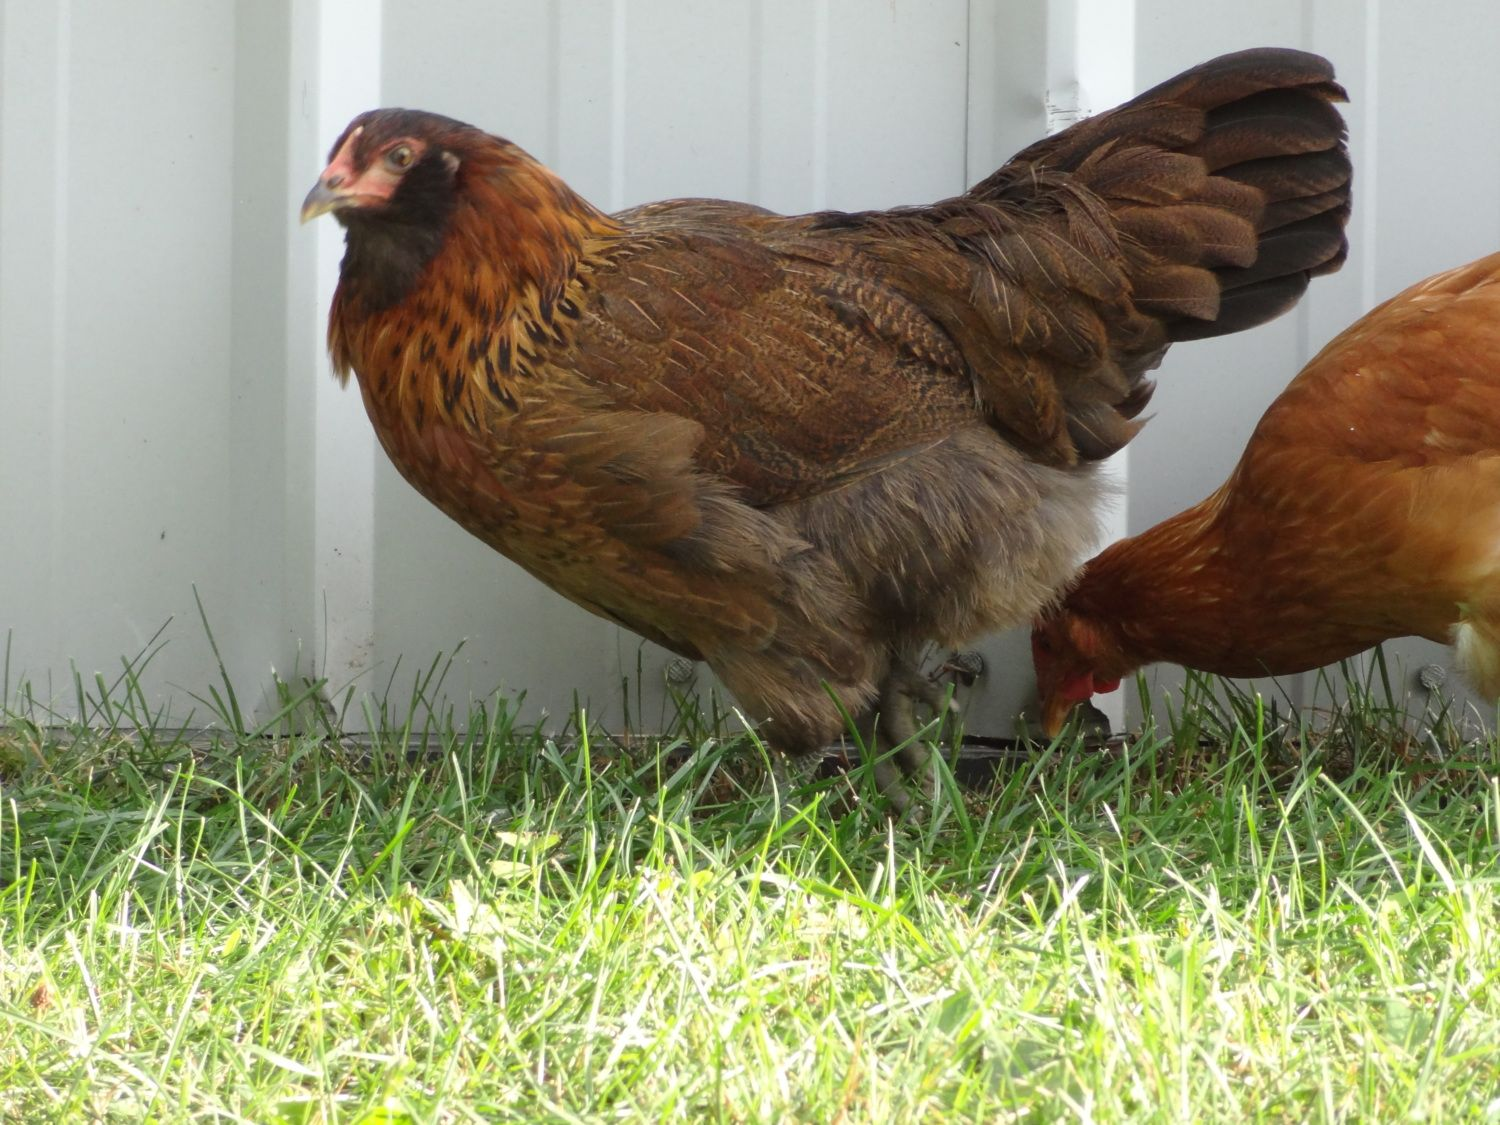 13 week old easter eggers roosters or hens backyard chickens